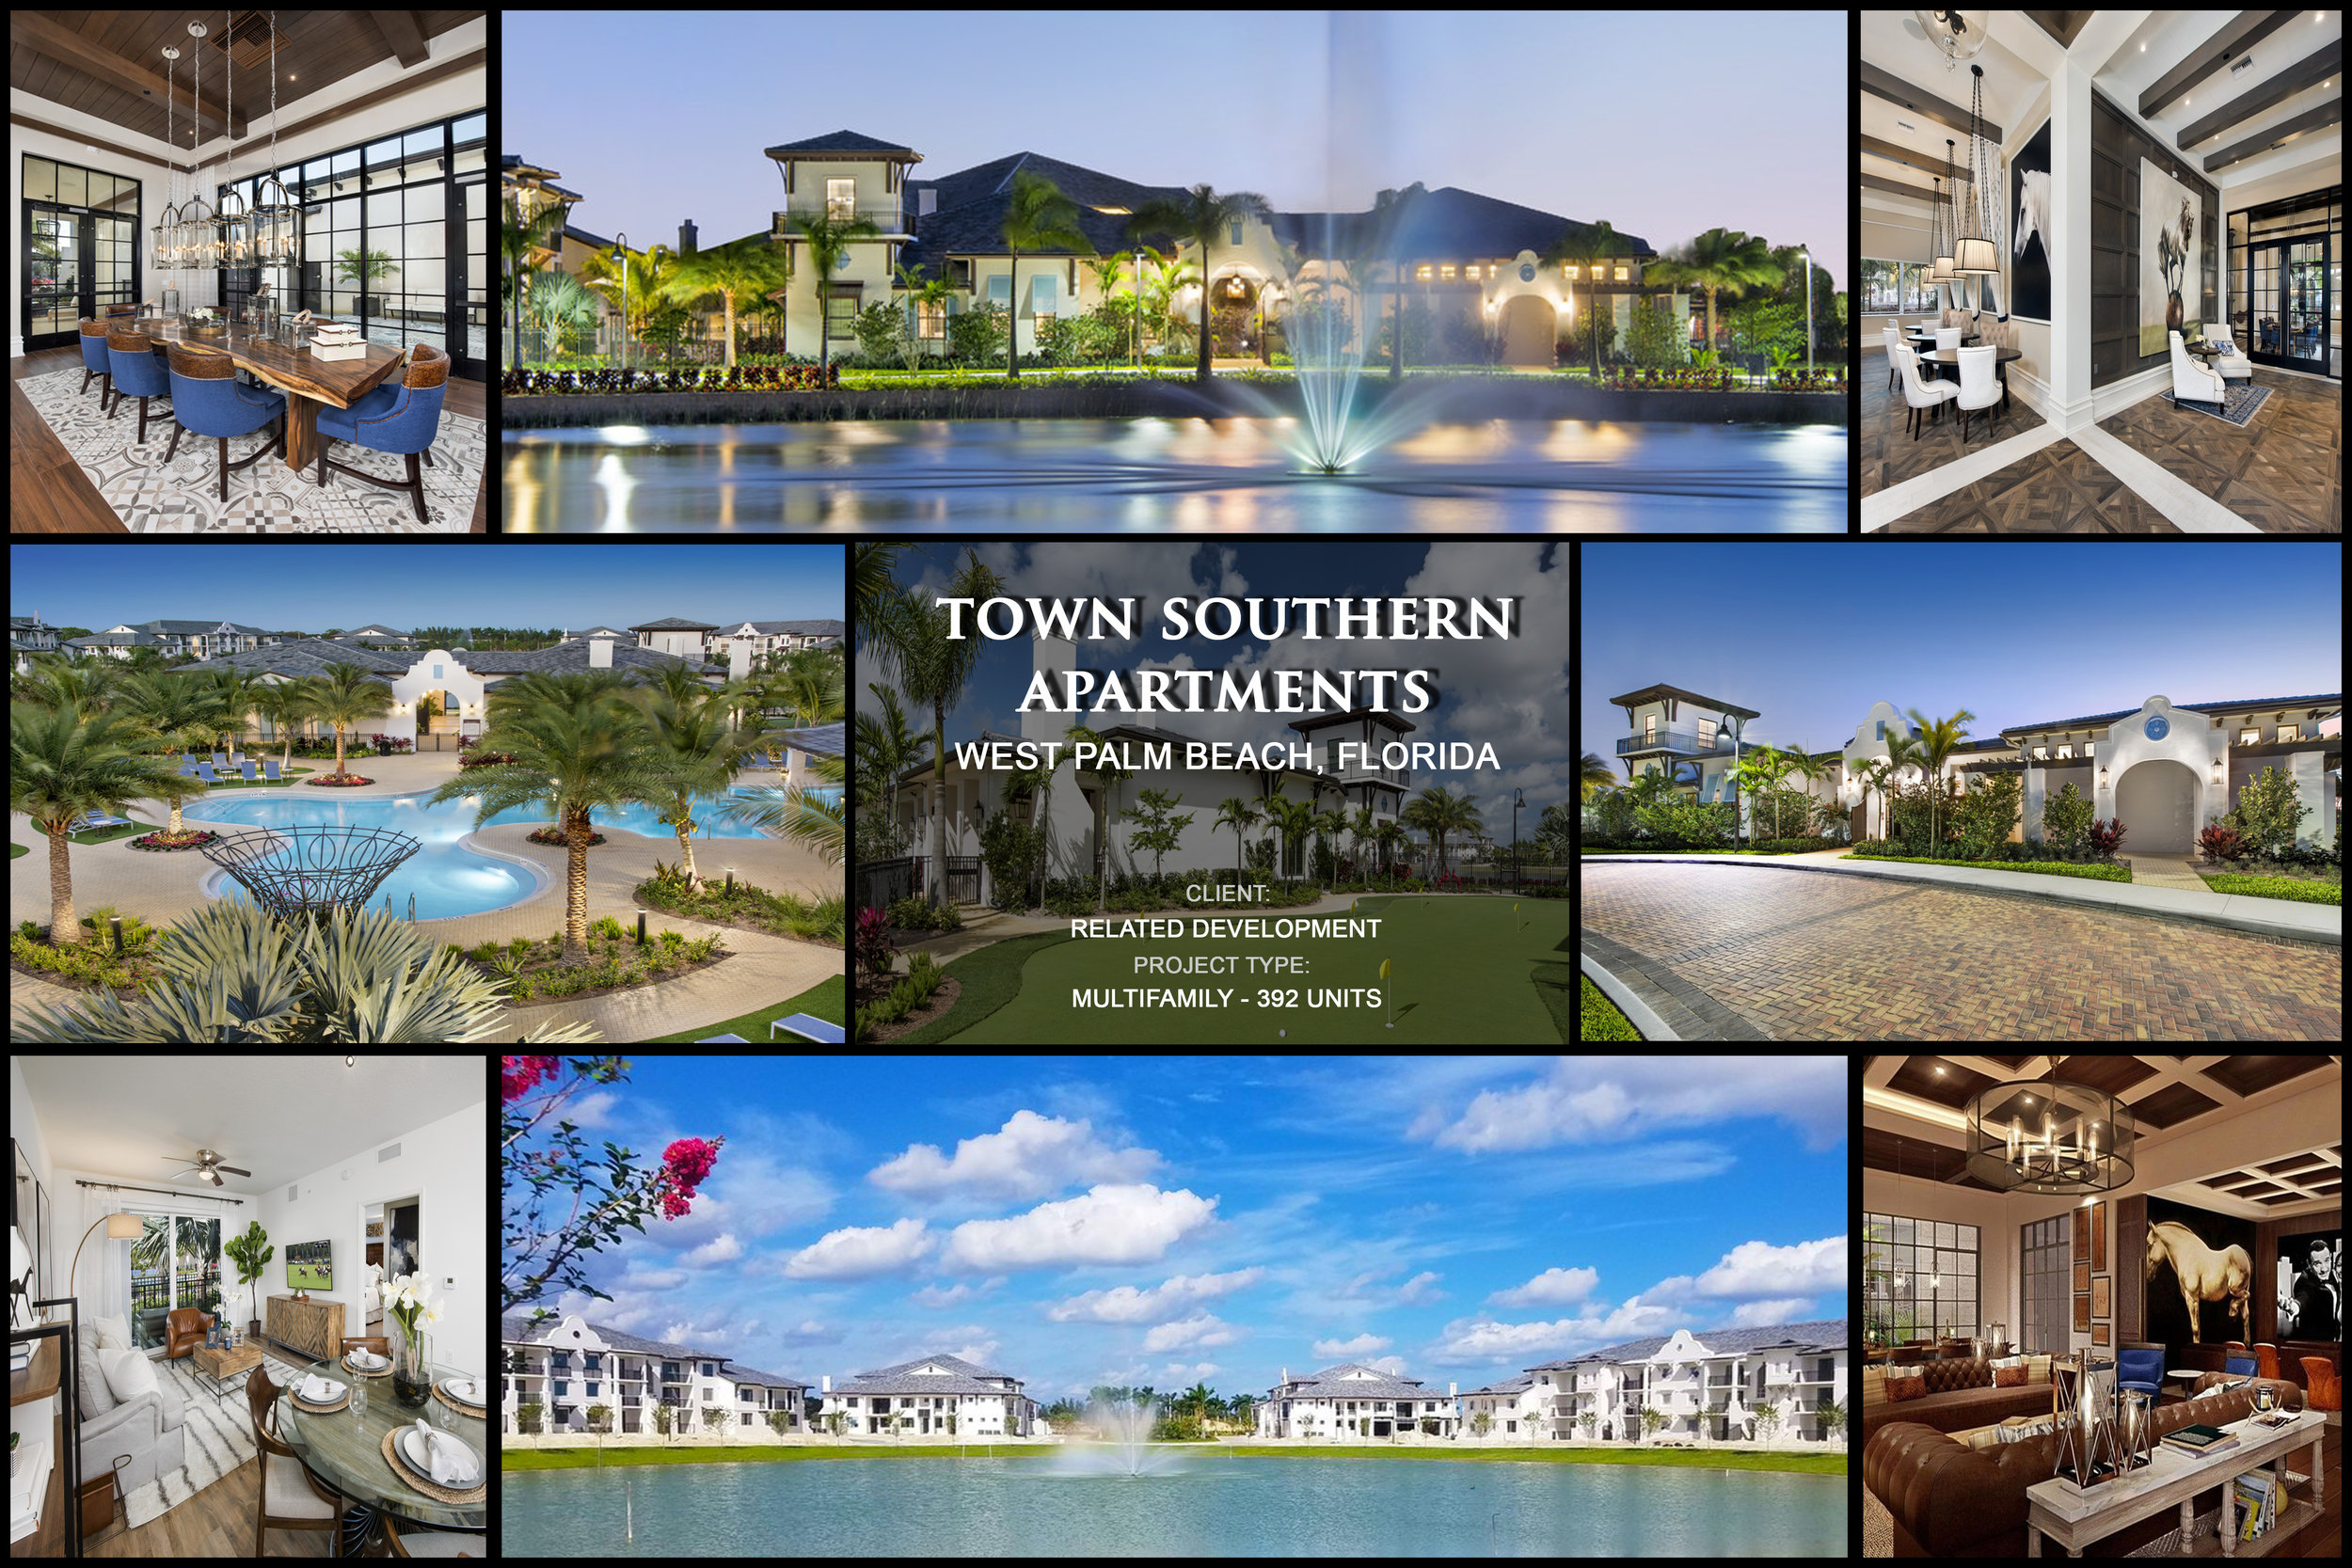 Town Southern Apartments